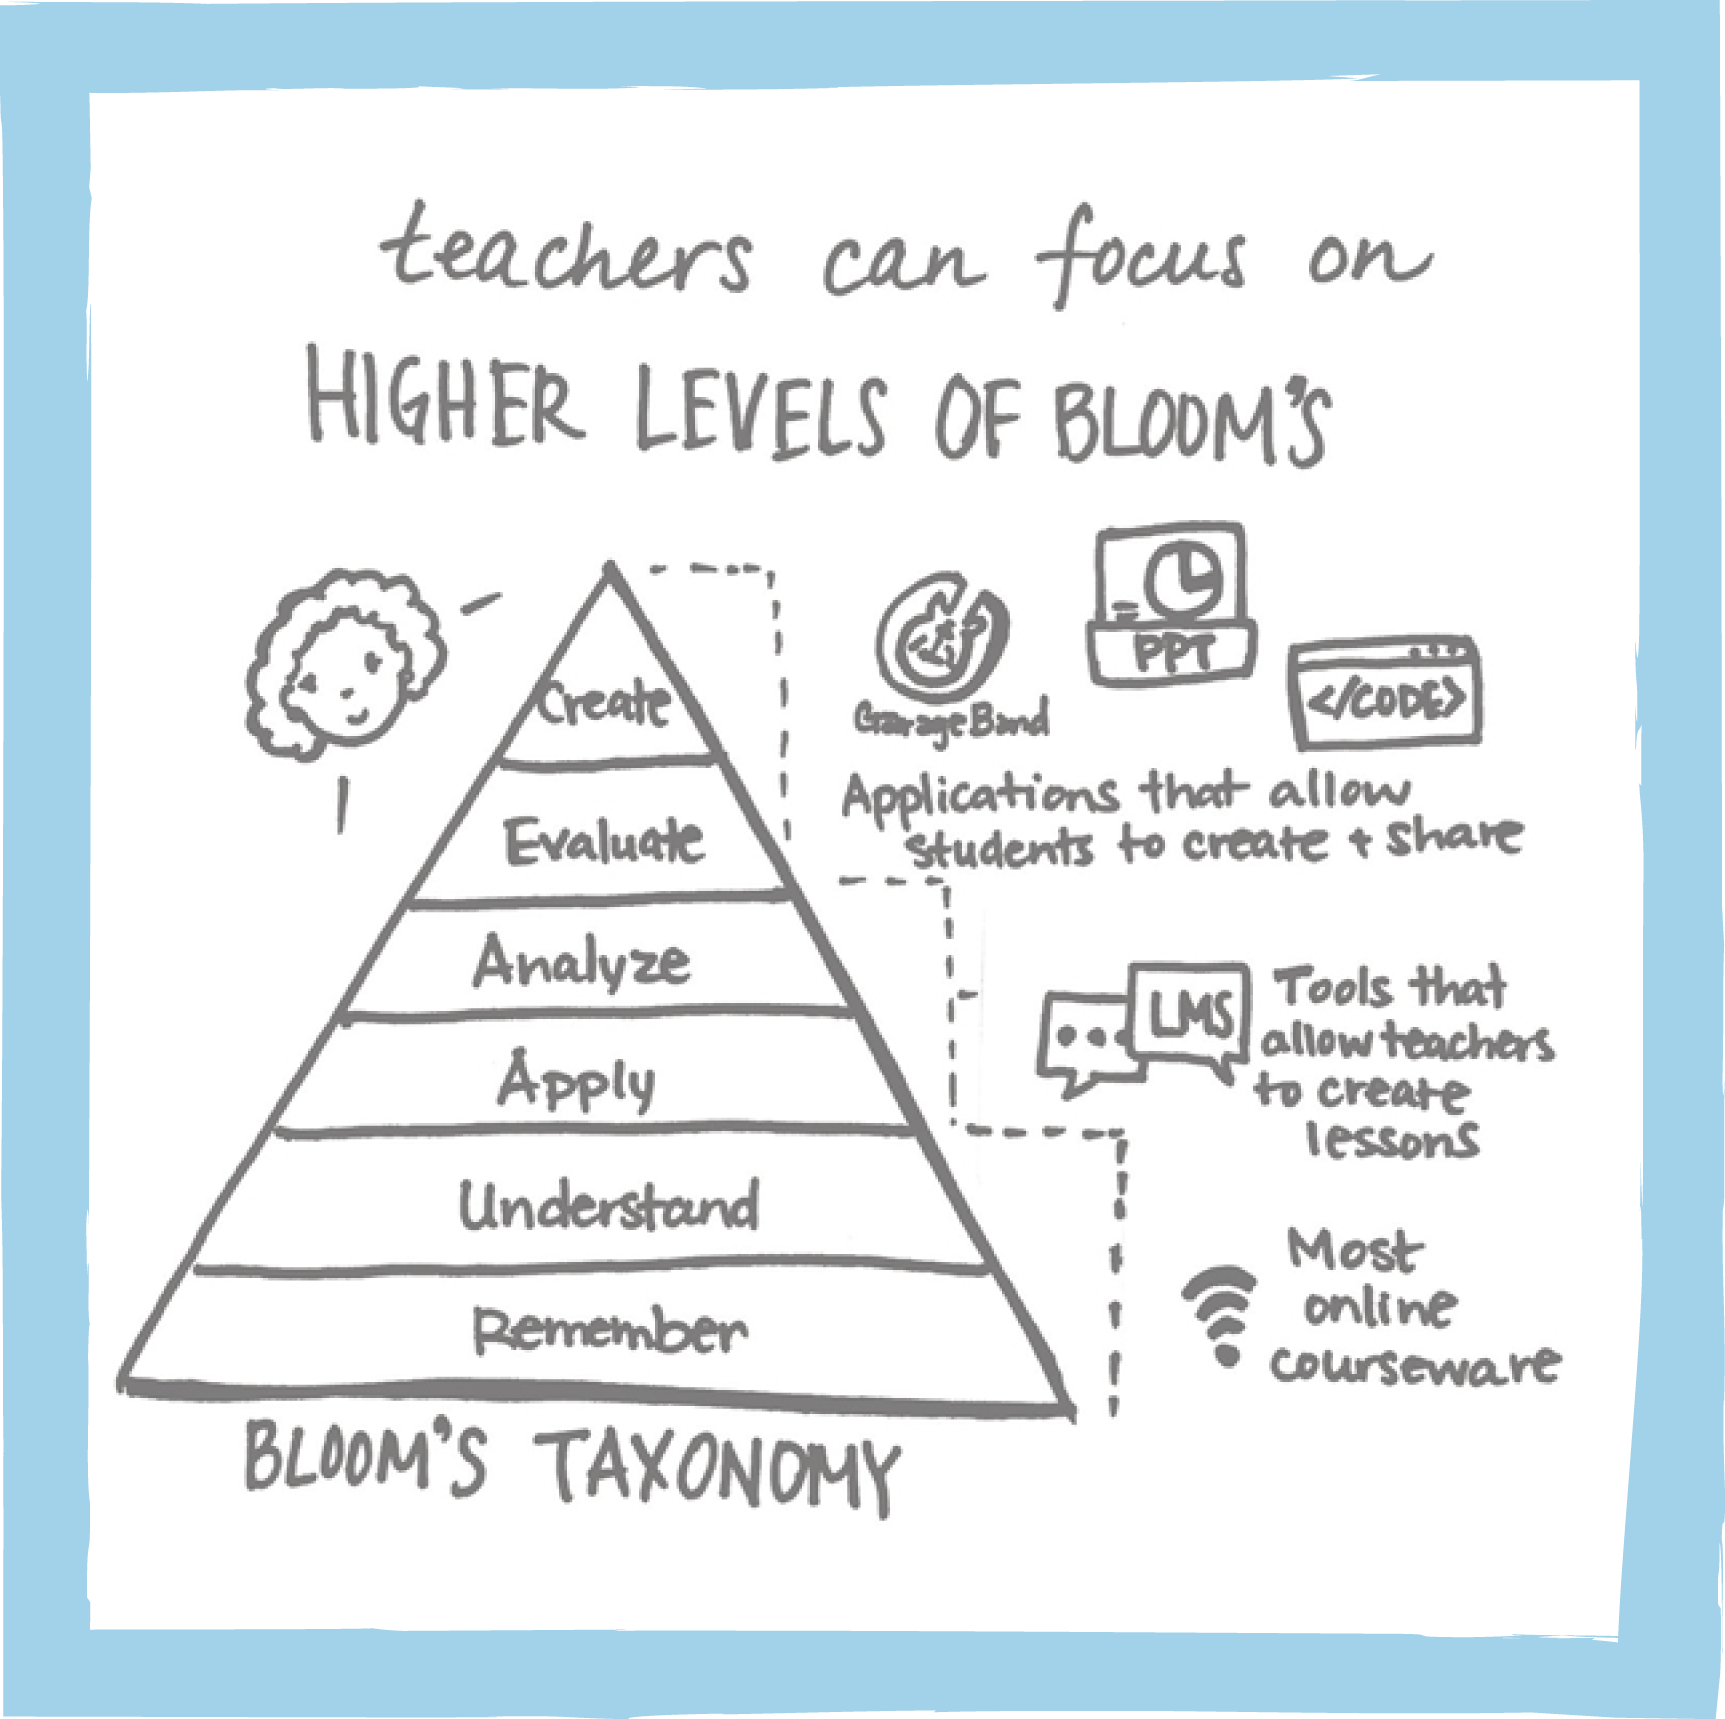 teachers can focus on higher level of blooms